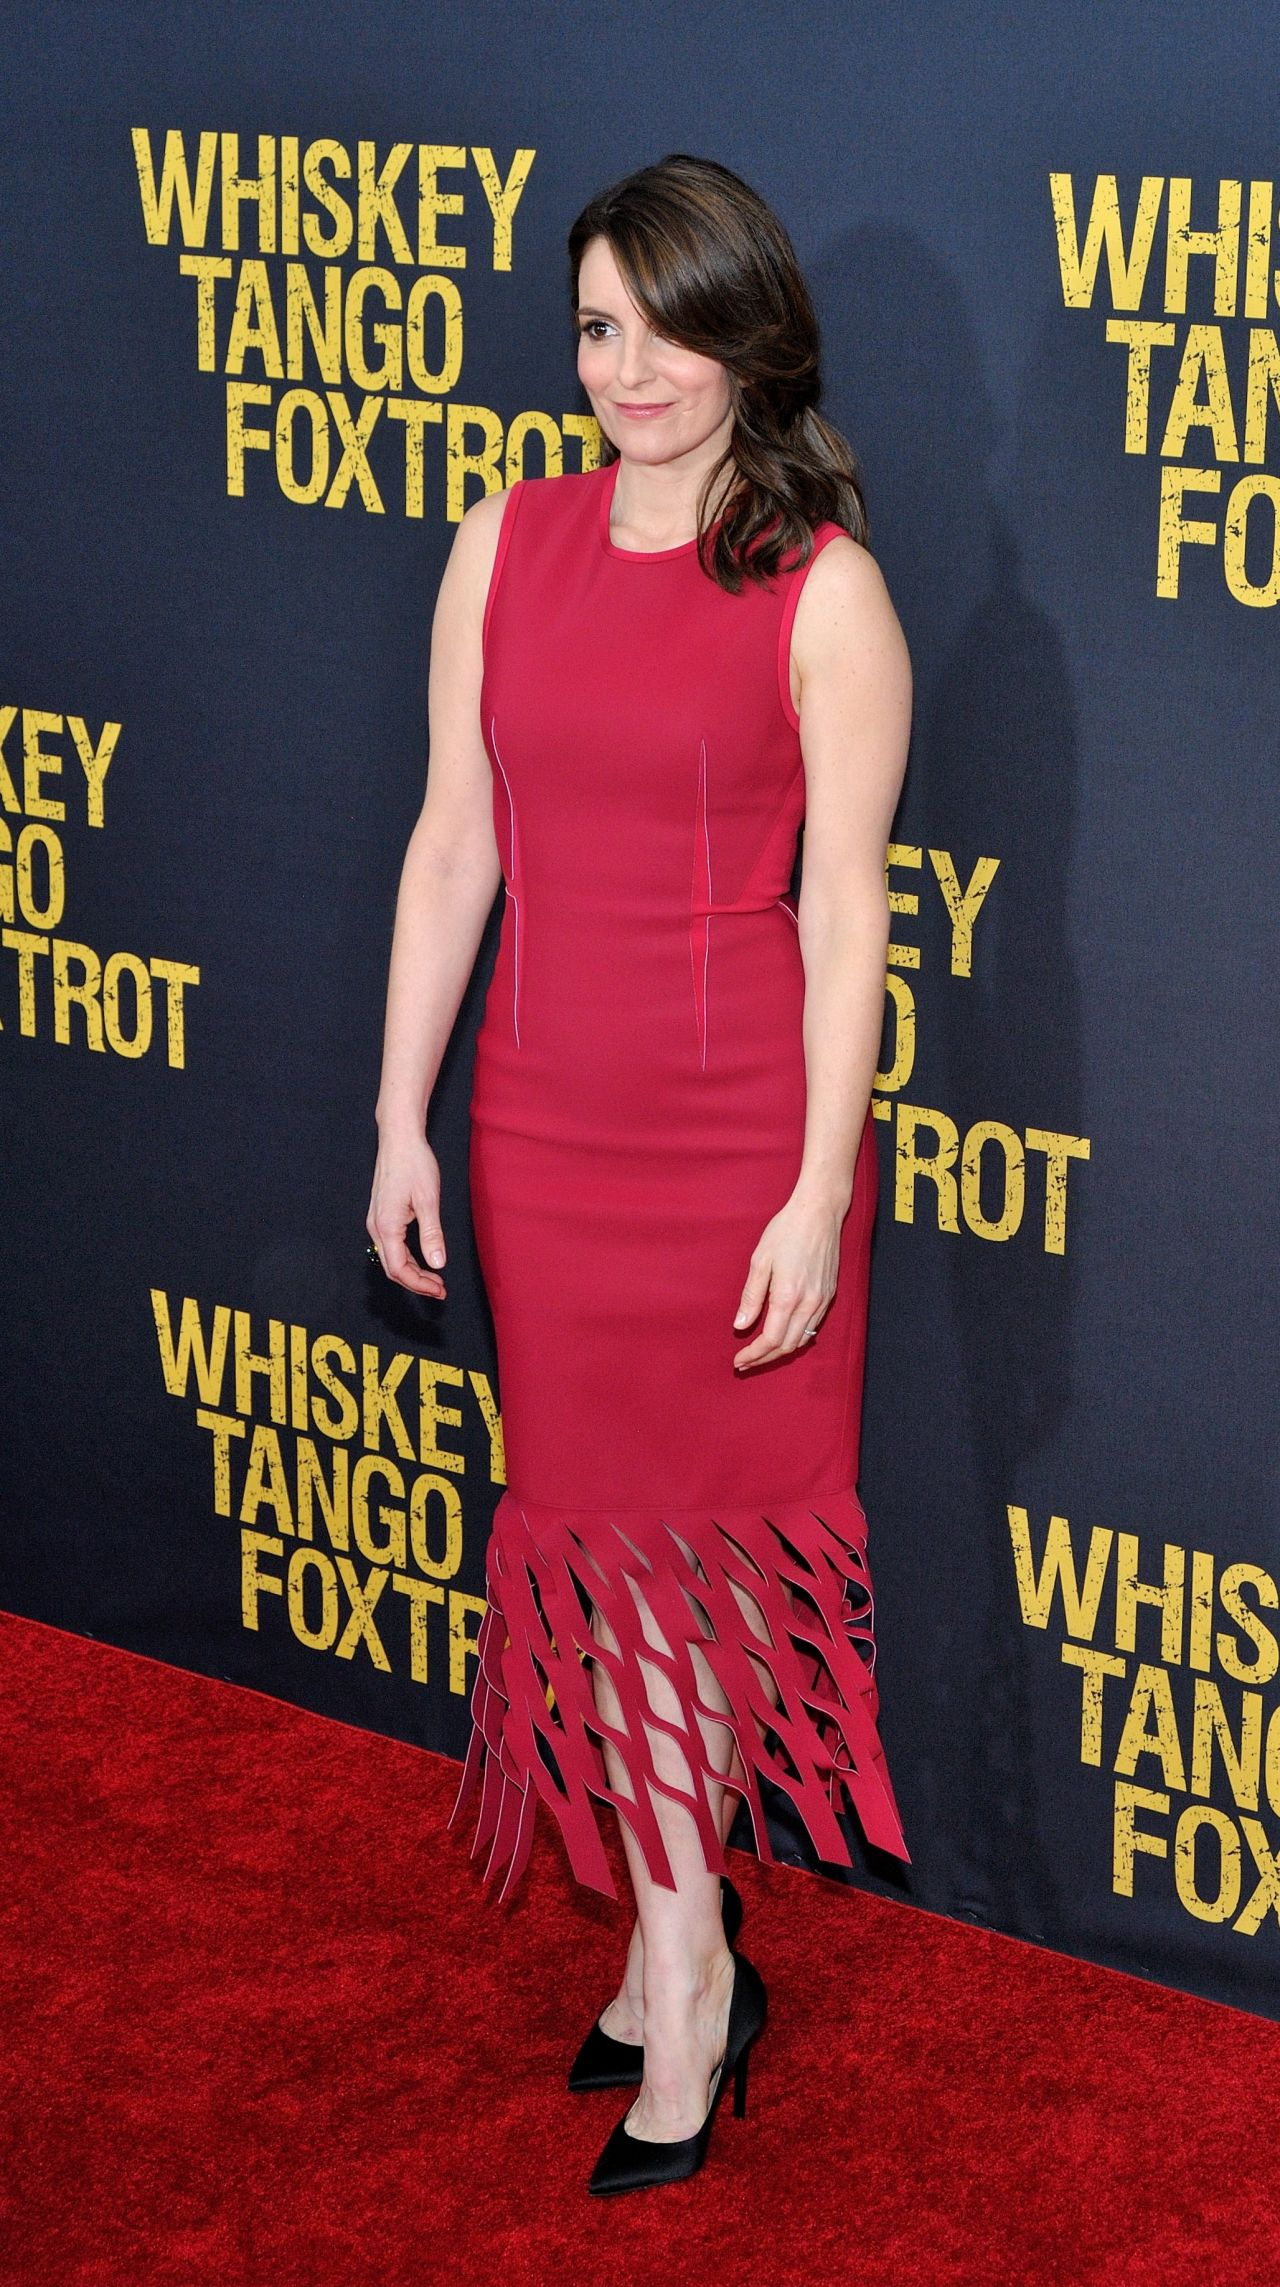 tina-fey-whiskey-tango-foxtrot-premiere-in-new-york-city-5